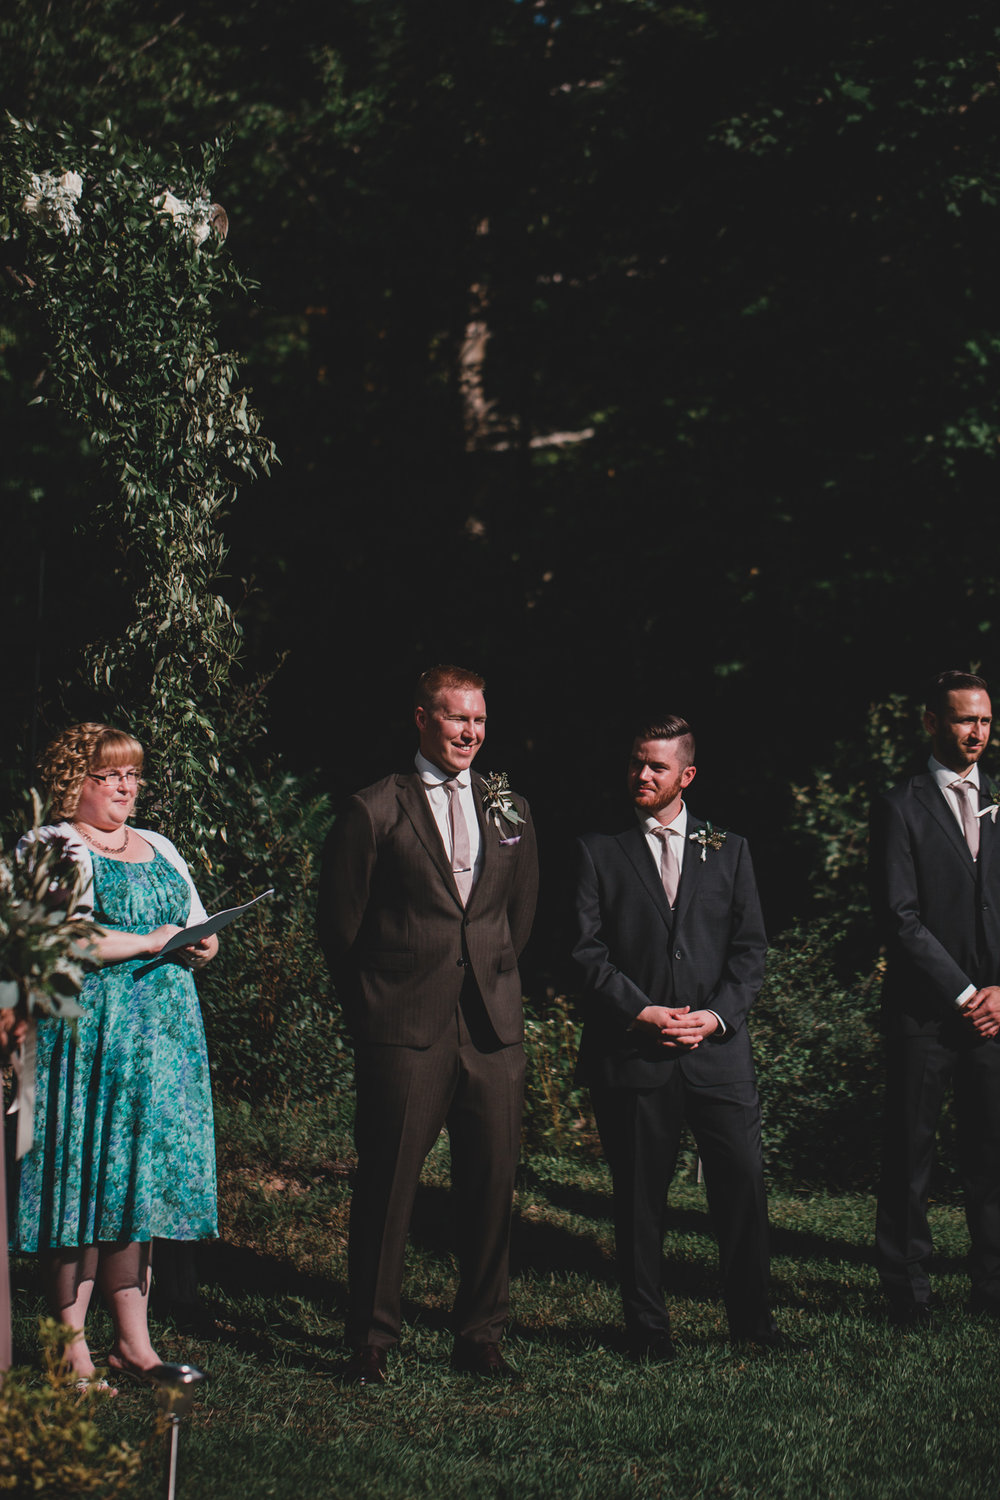 211-Jonathan-Kuhn-Photography-AmaliaKen-Wedding-WEB-2186.jpg